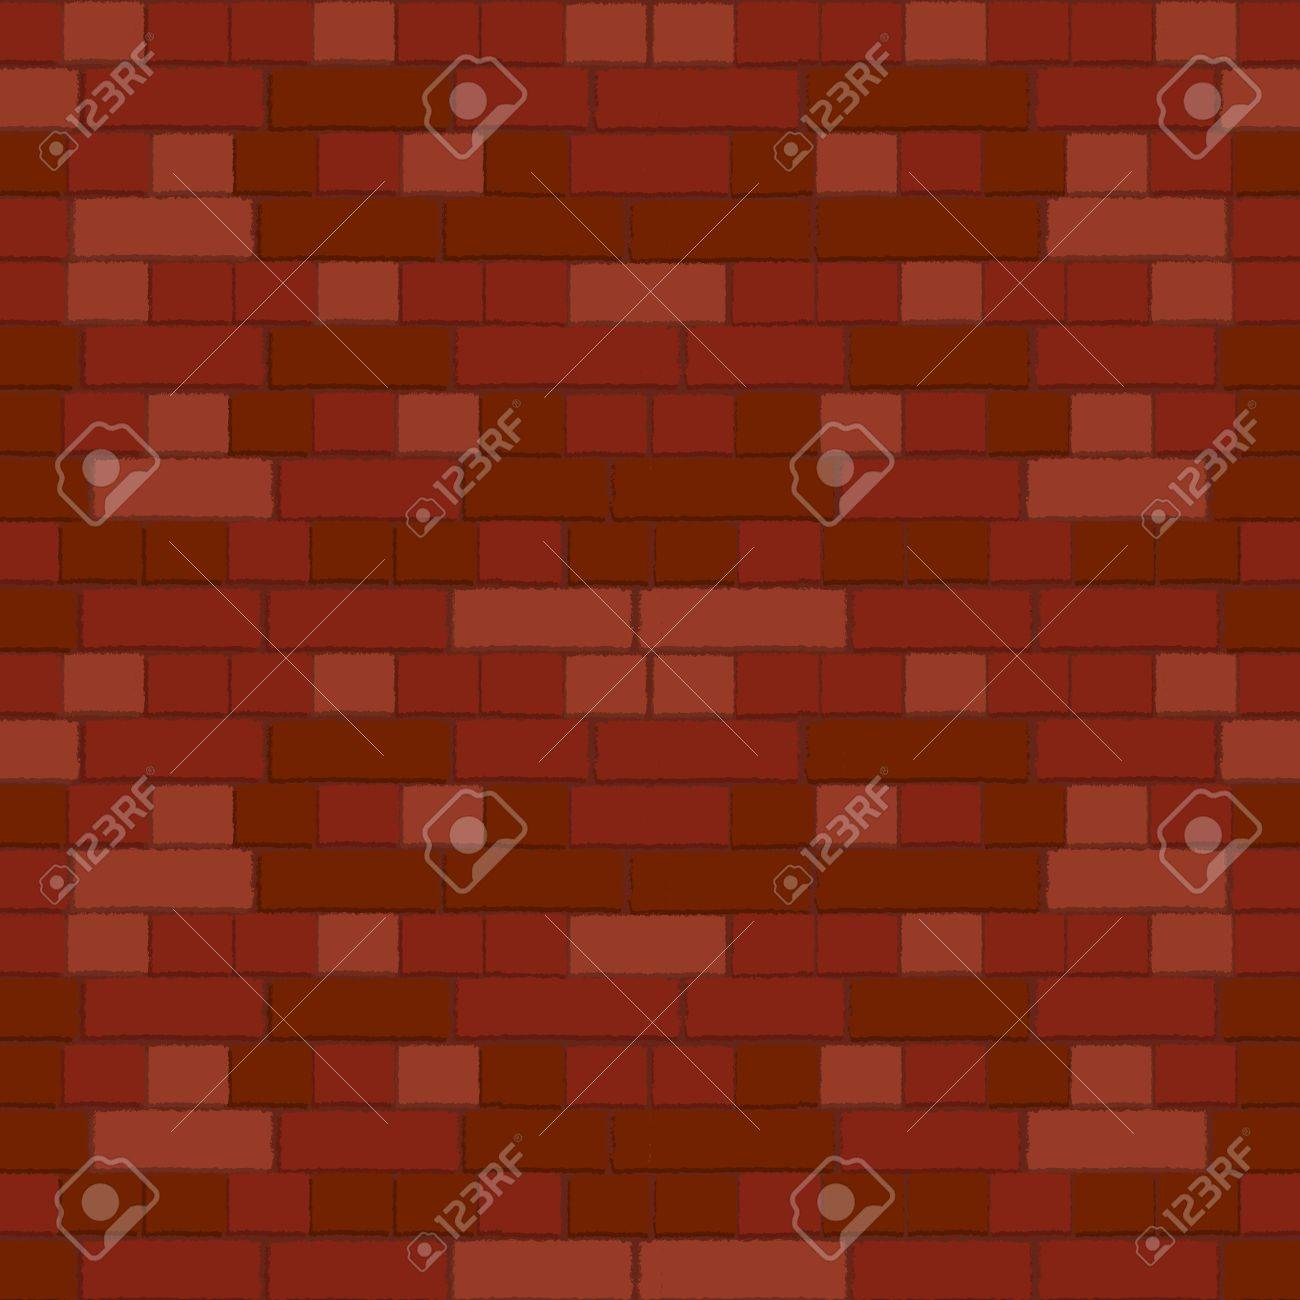 Oval empty frame nailed on brick wall, no mesh or transparencies Stock Vector - 9326723